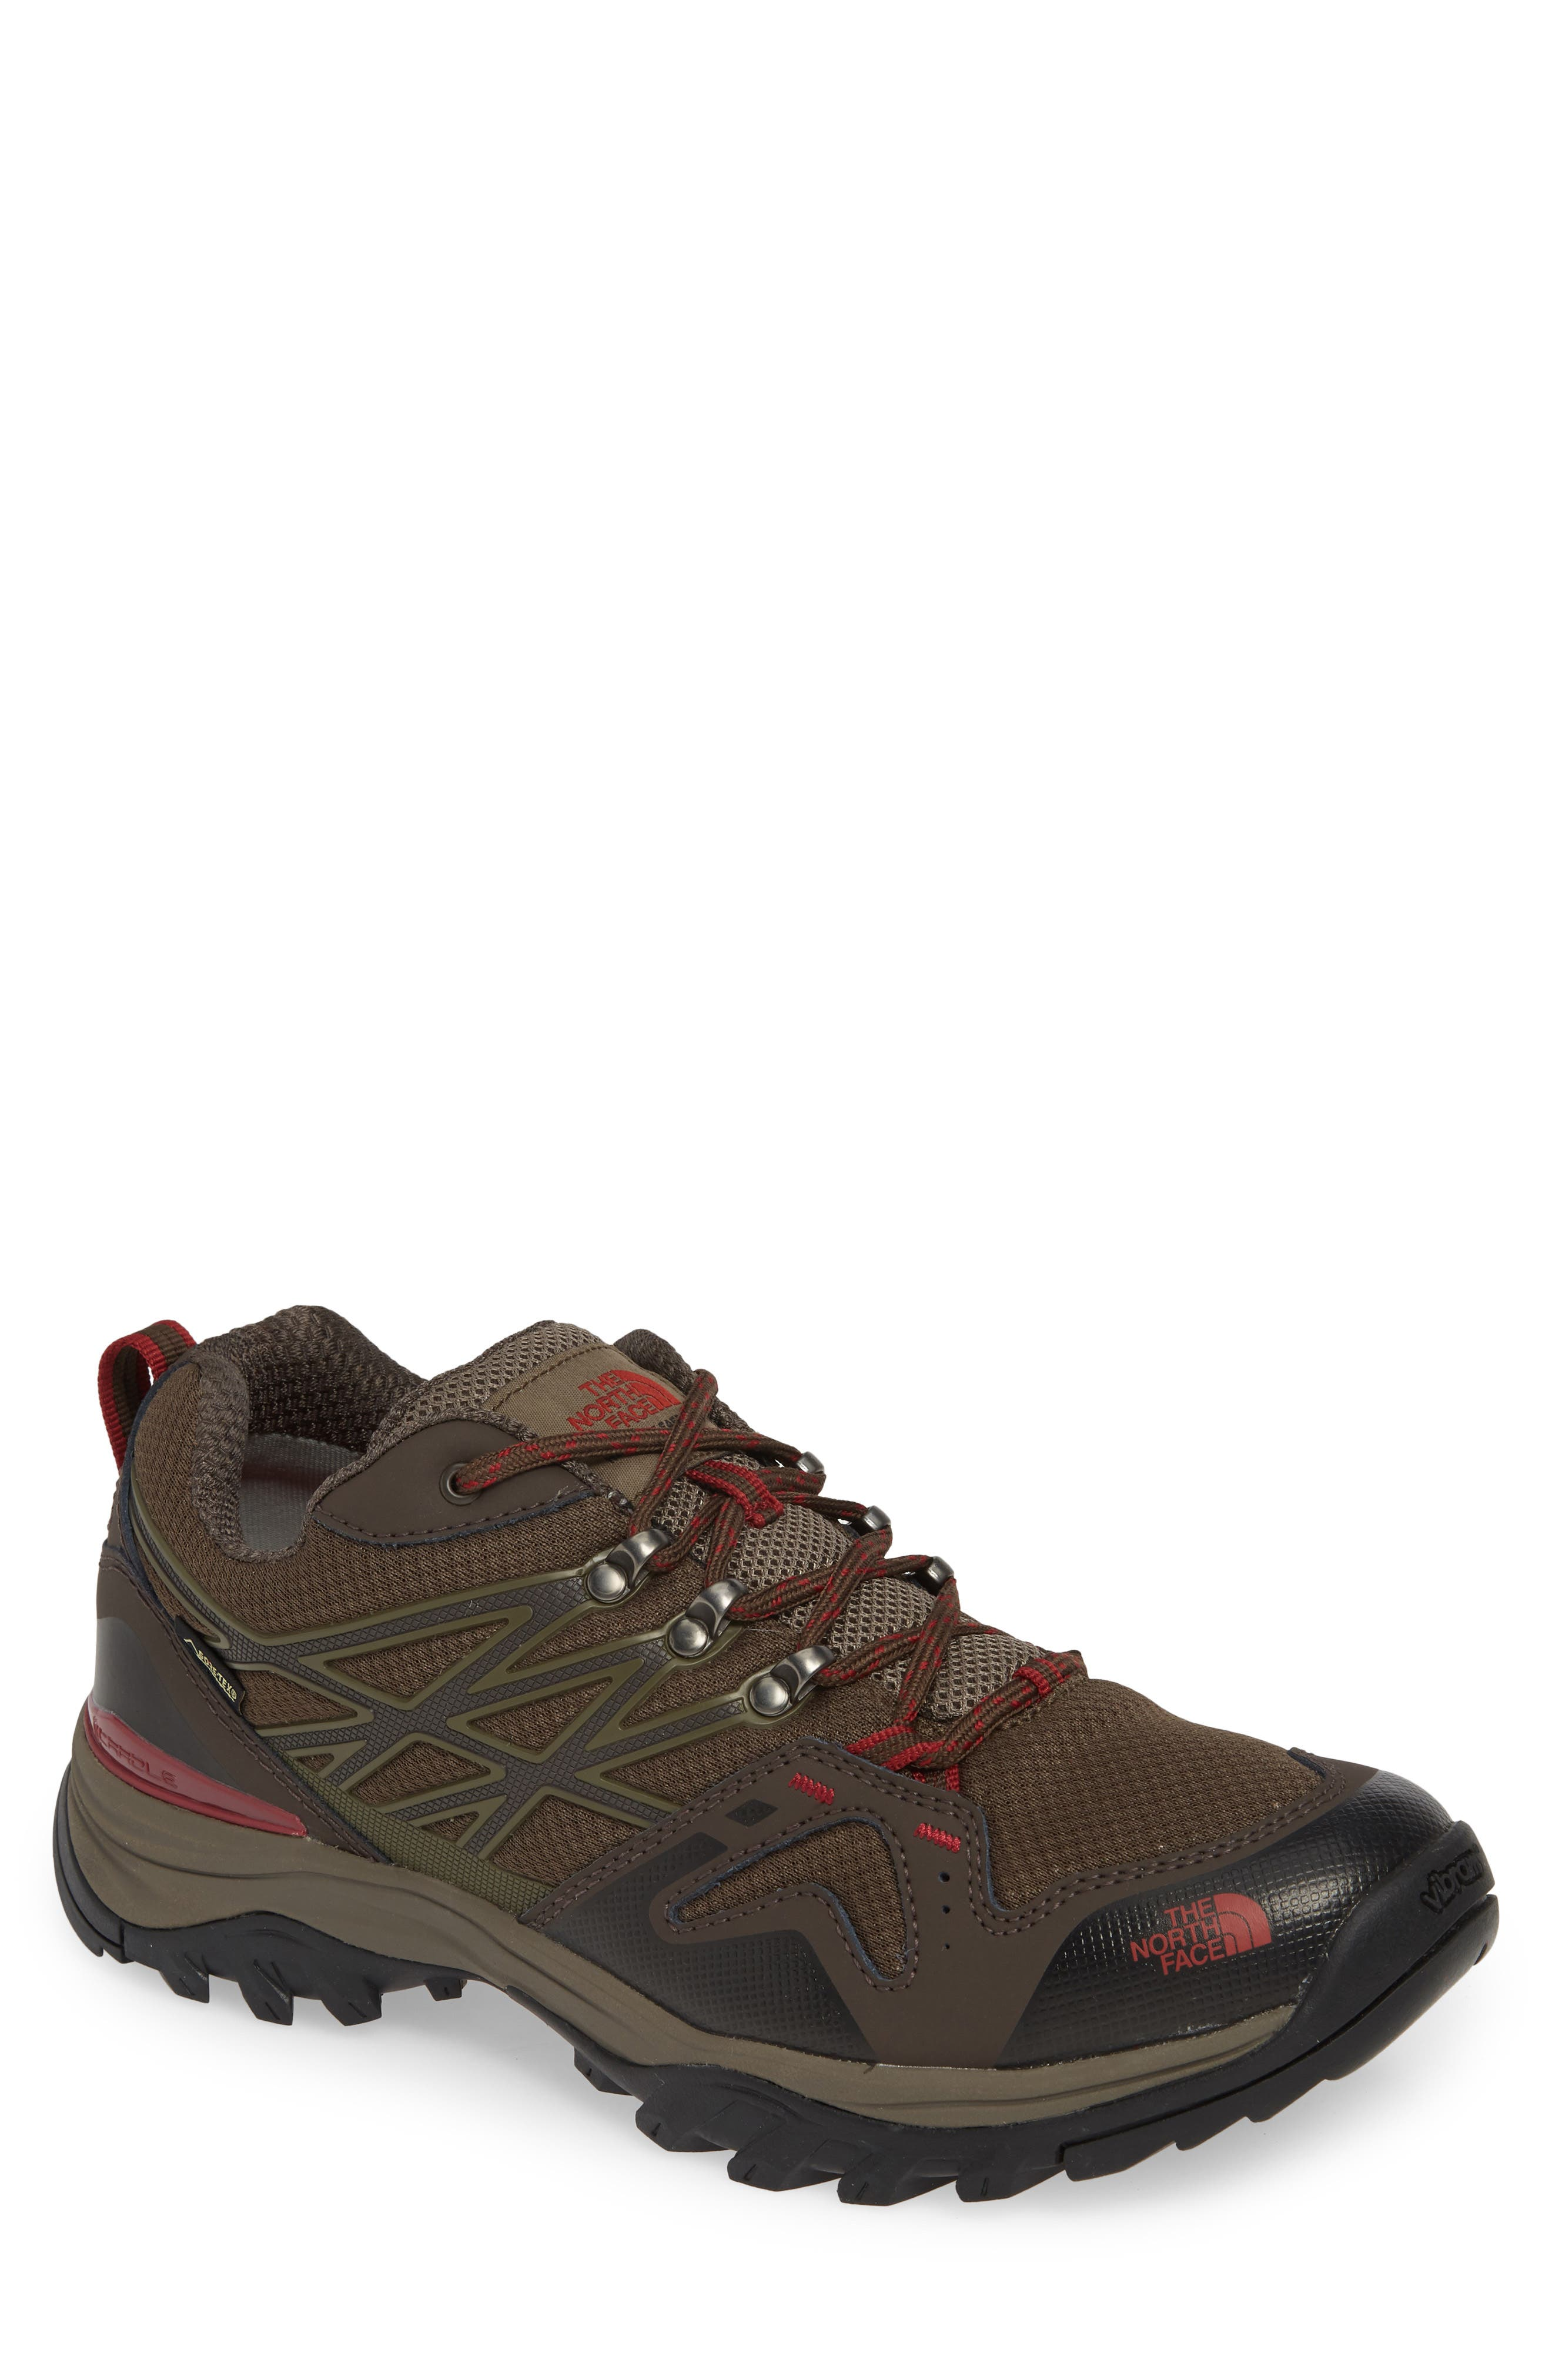 ff3b88726368 The North Face - Men s Casual Fashion Shoes and Sneakers